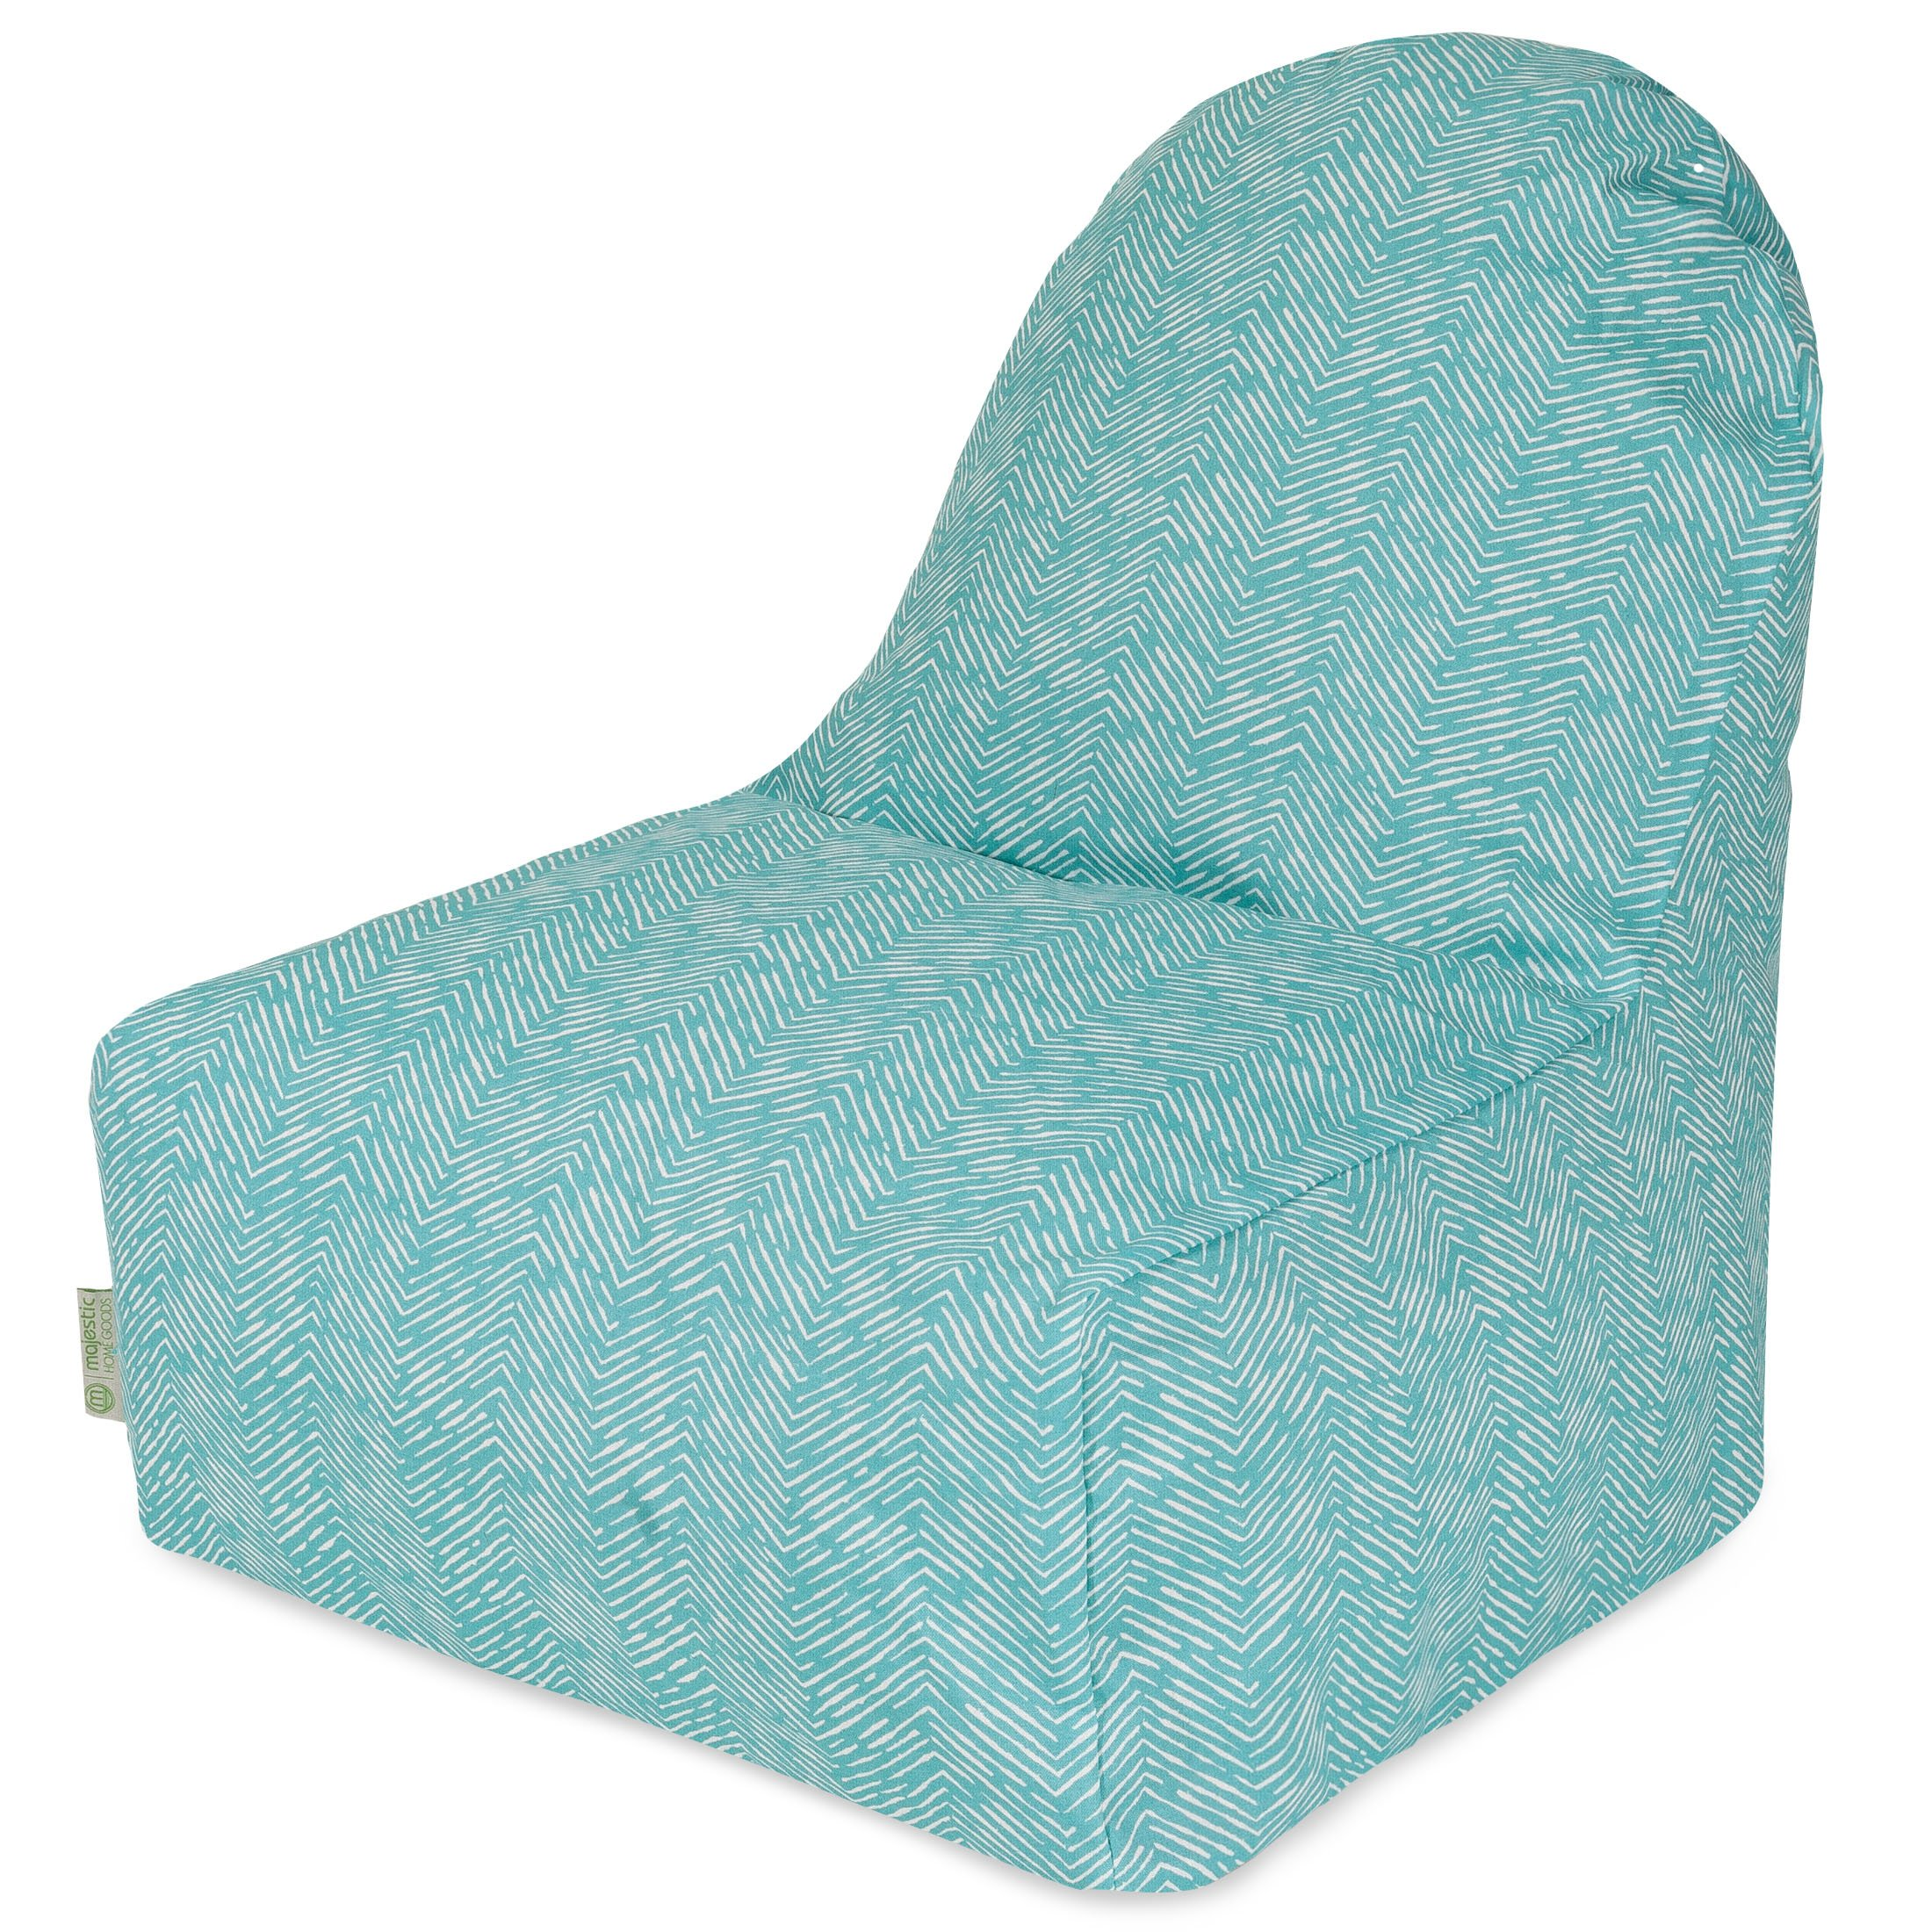 Majestic Home Goods Navajo Kick-It Chair, Teal